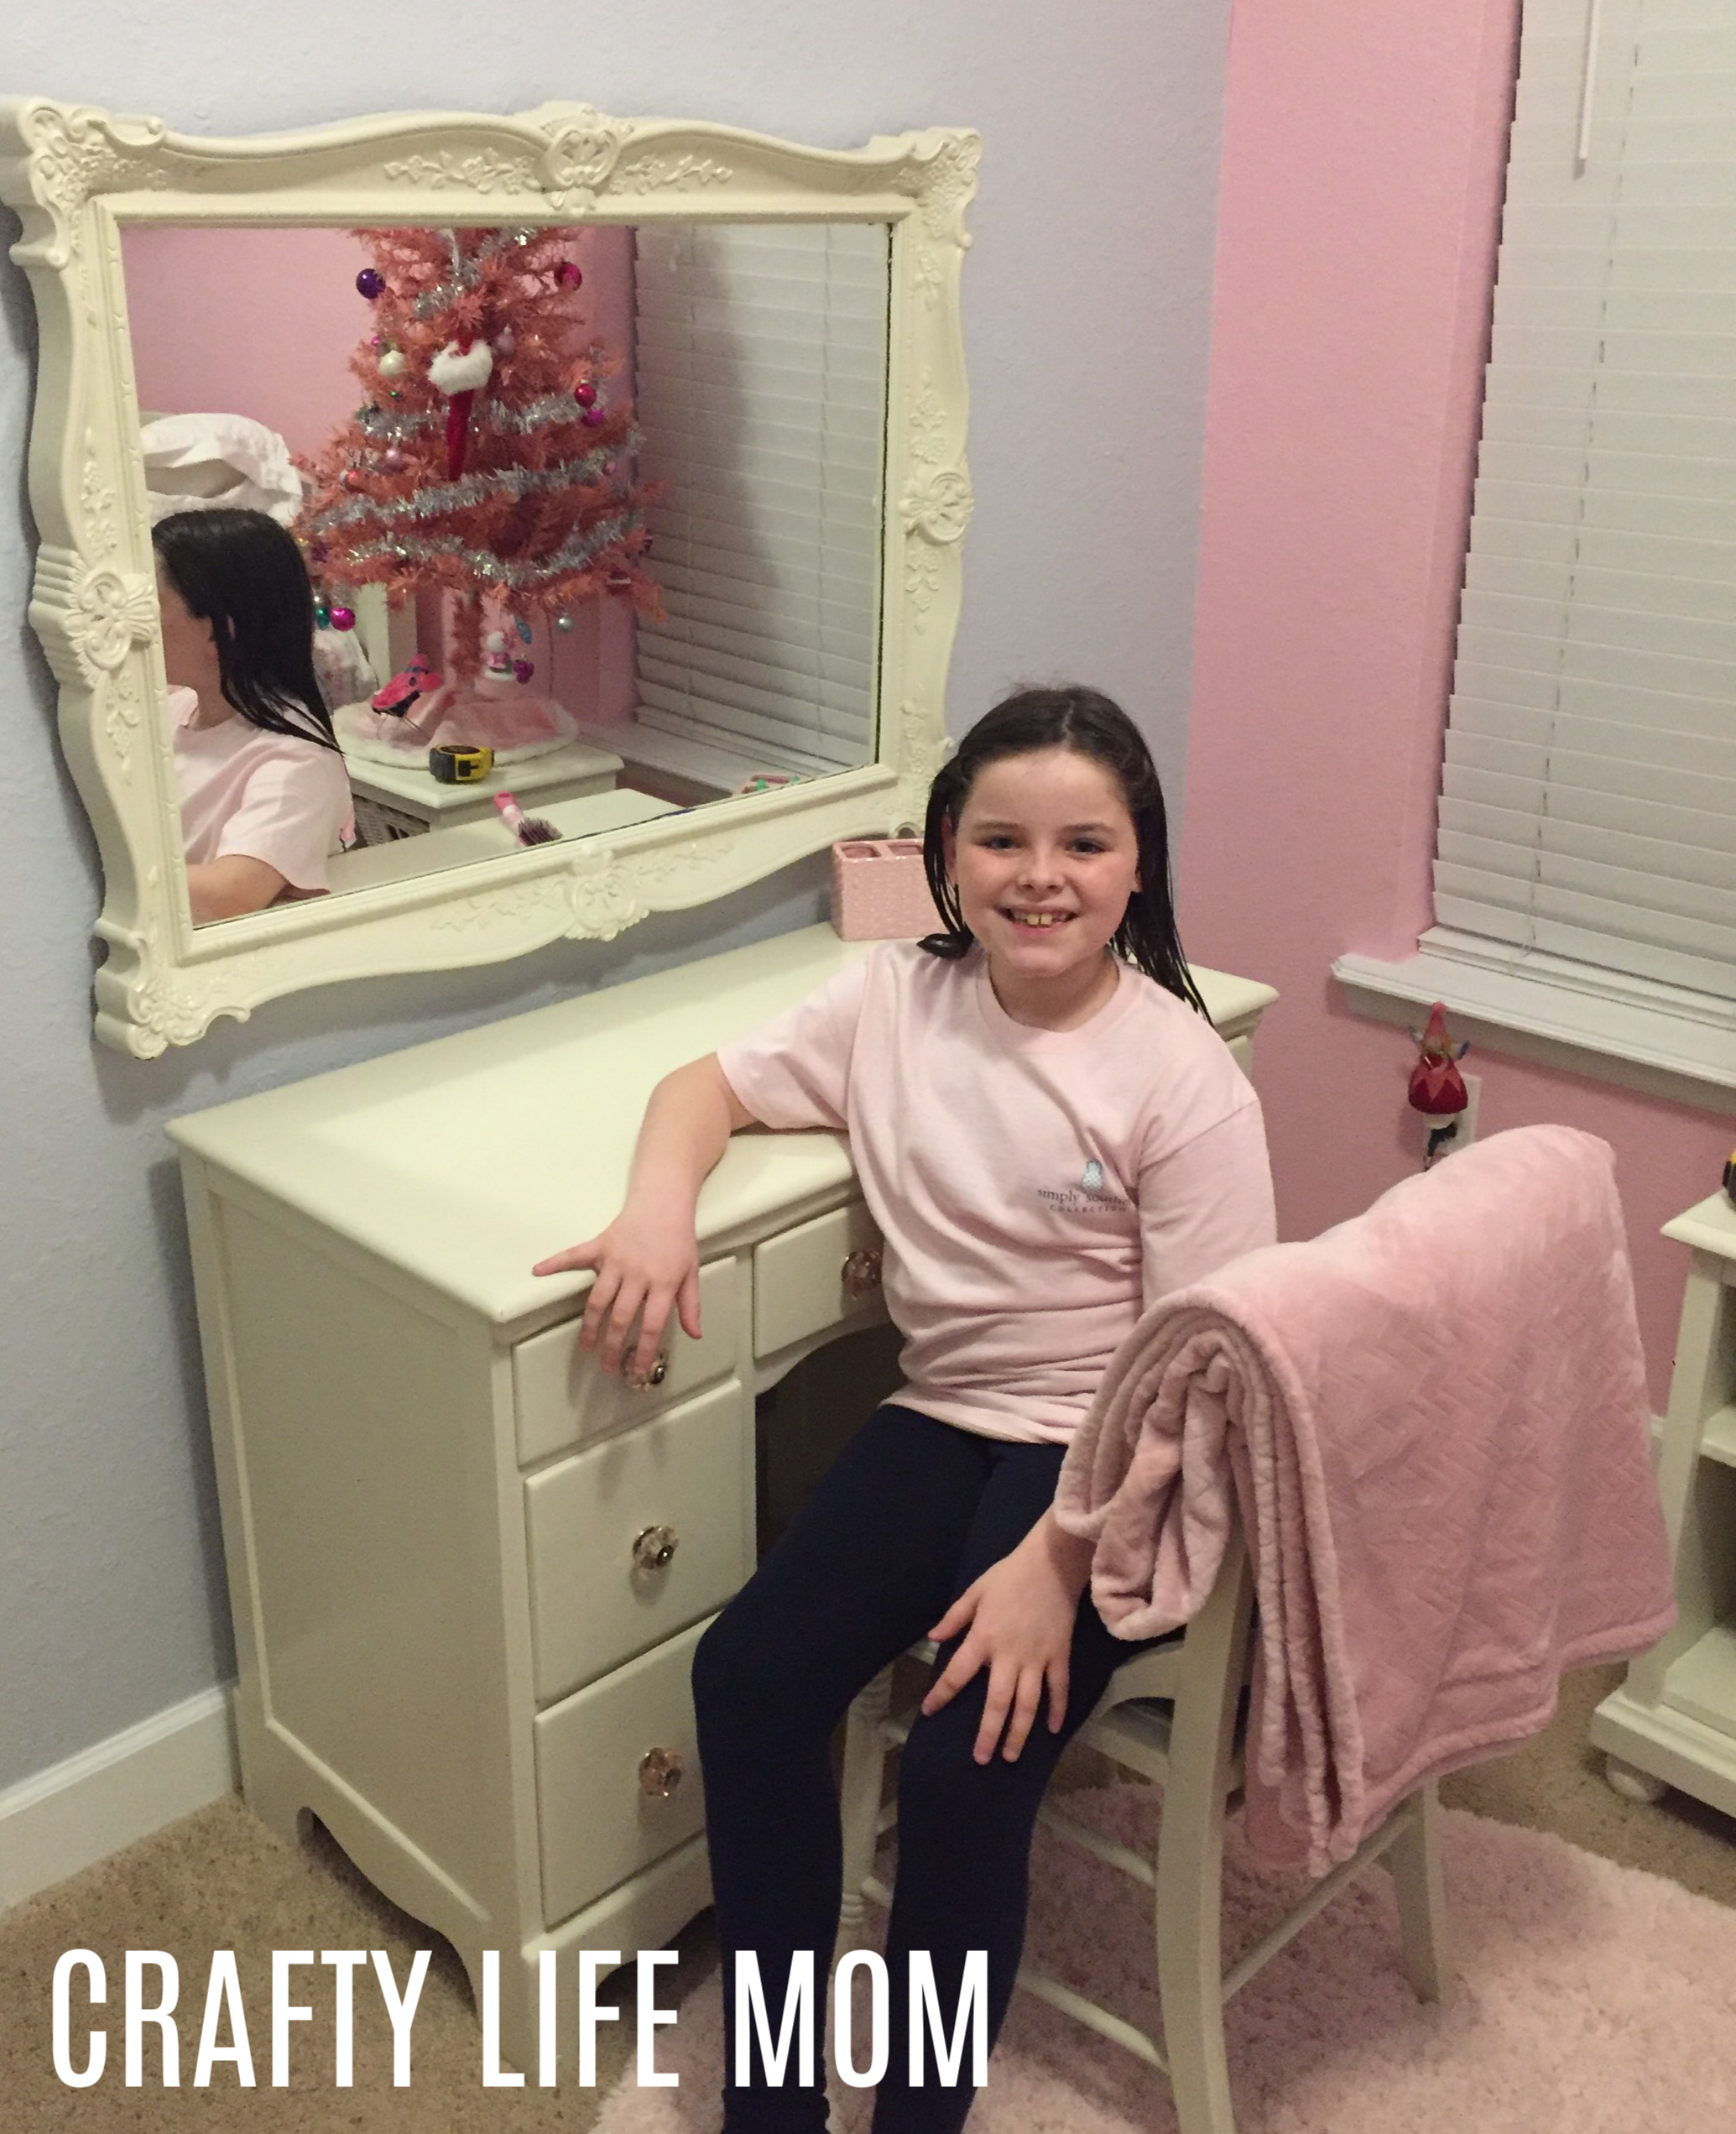 Learn to create a simple DIY girls vanity and desk. This is an inspirational easy to follow tutorial using a garage sale find transformed into something beautiful and girly. It is perfect for a girls room and vanity. With new paint, decoupage, and new hardware this vanity is a beauty.